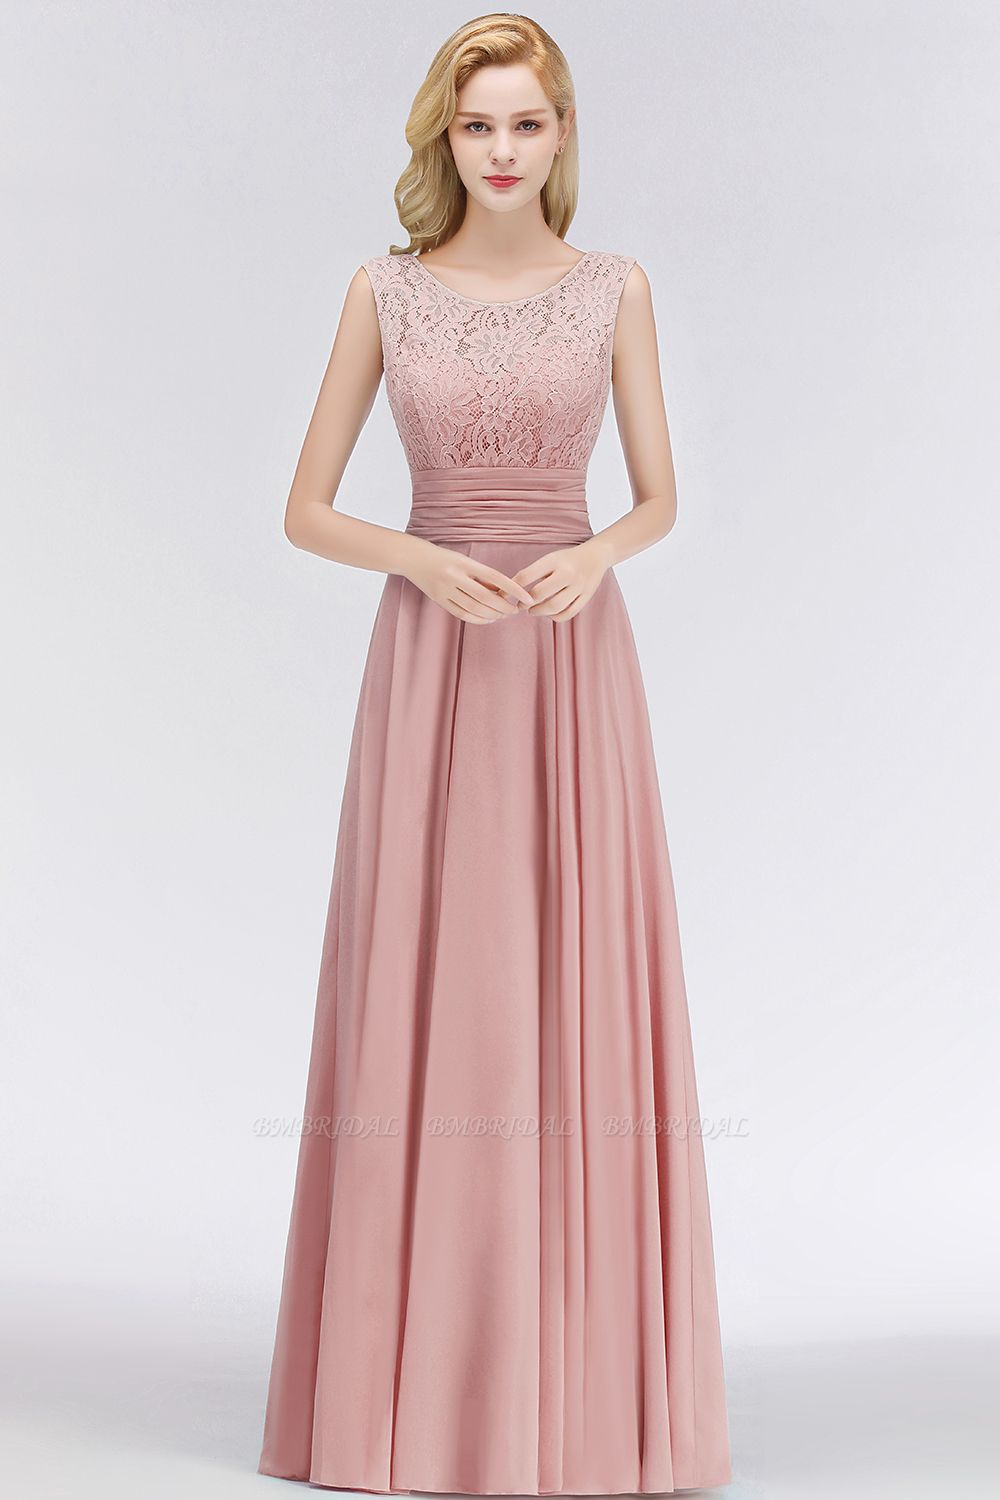 BMbridal Elegant Lace Jewel Sleeveless Dusty Rose Bridesmaid Dress Online